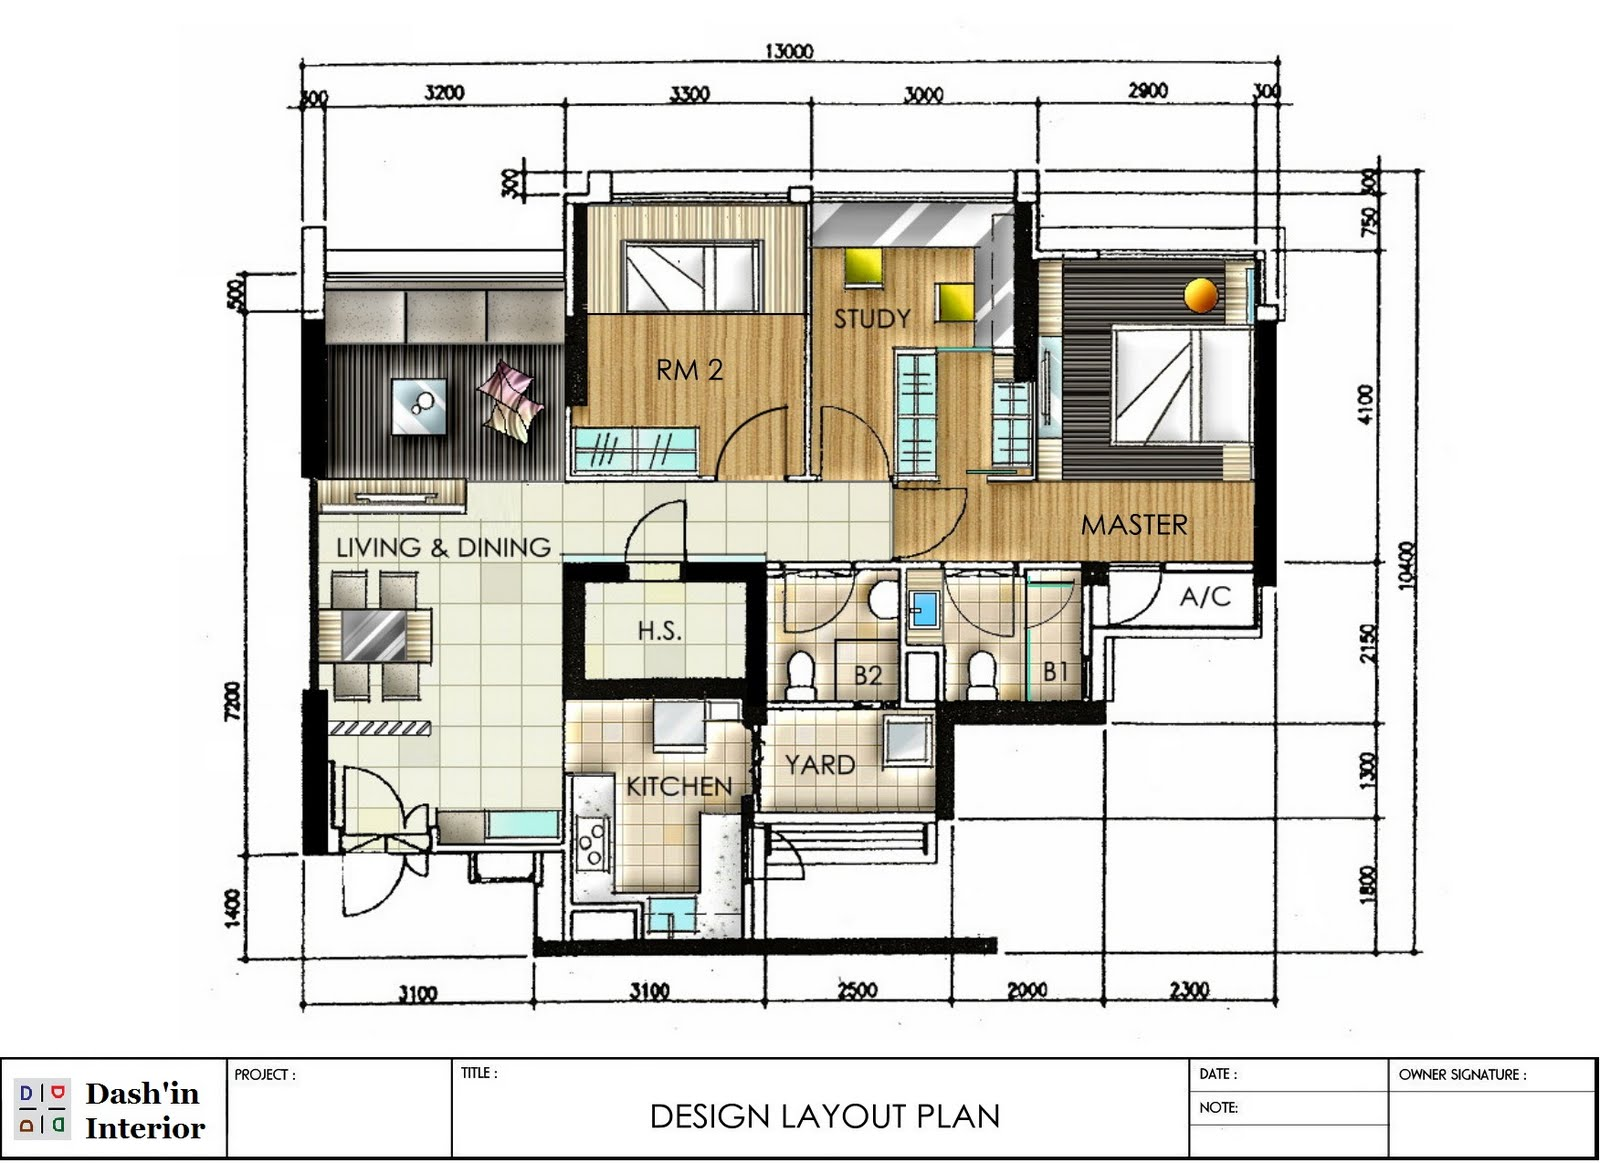 Dash 39 in interior hand drawn designs floor plan layout for House plans interior photos